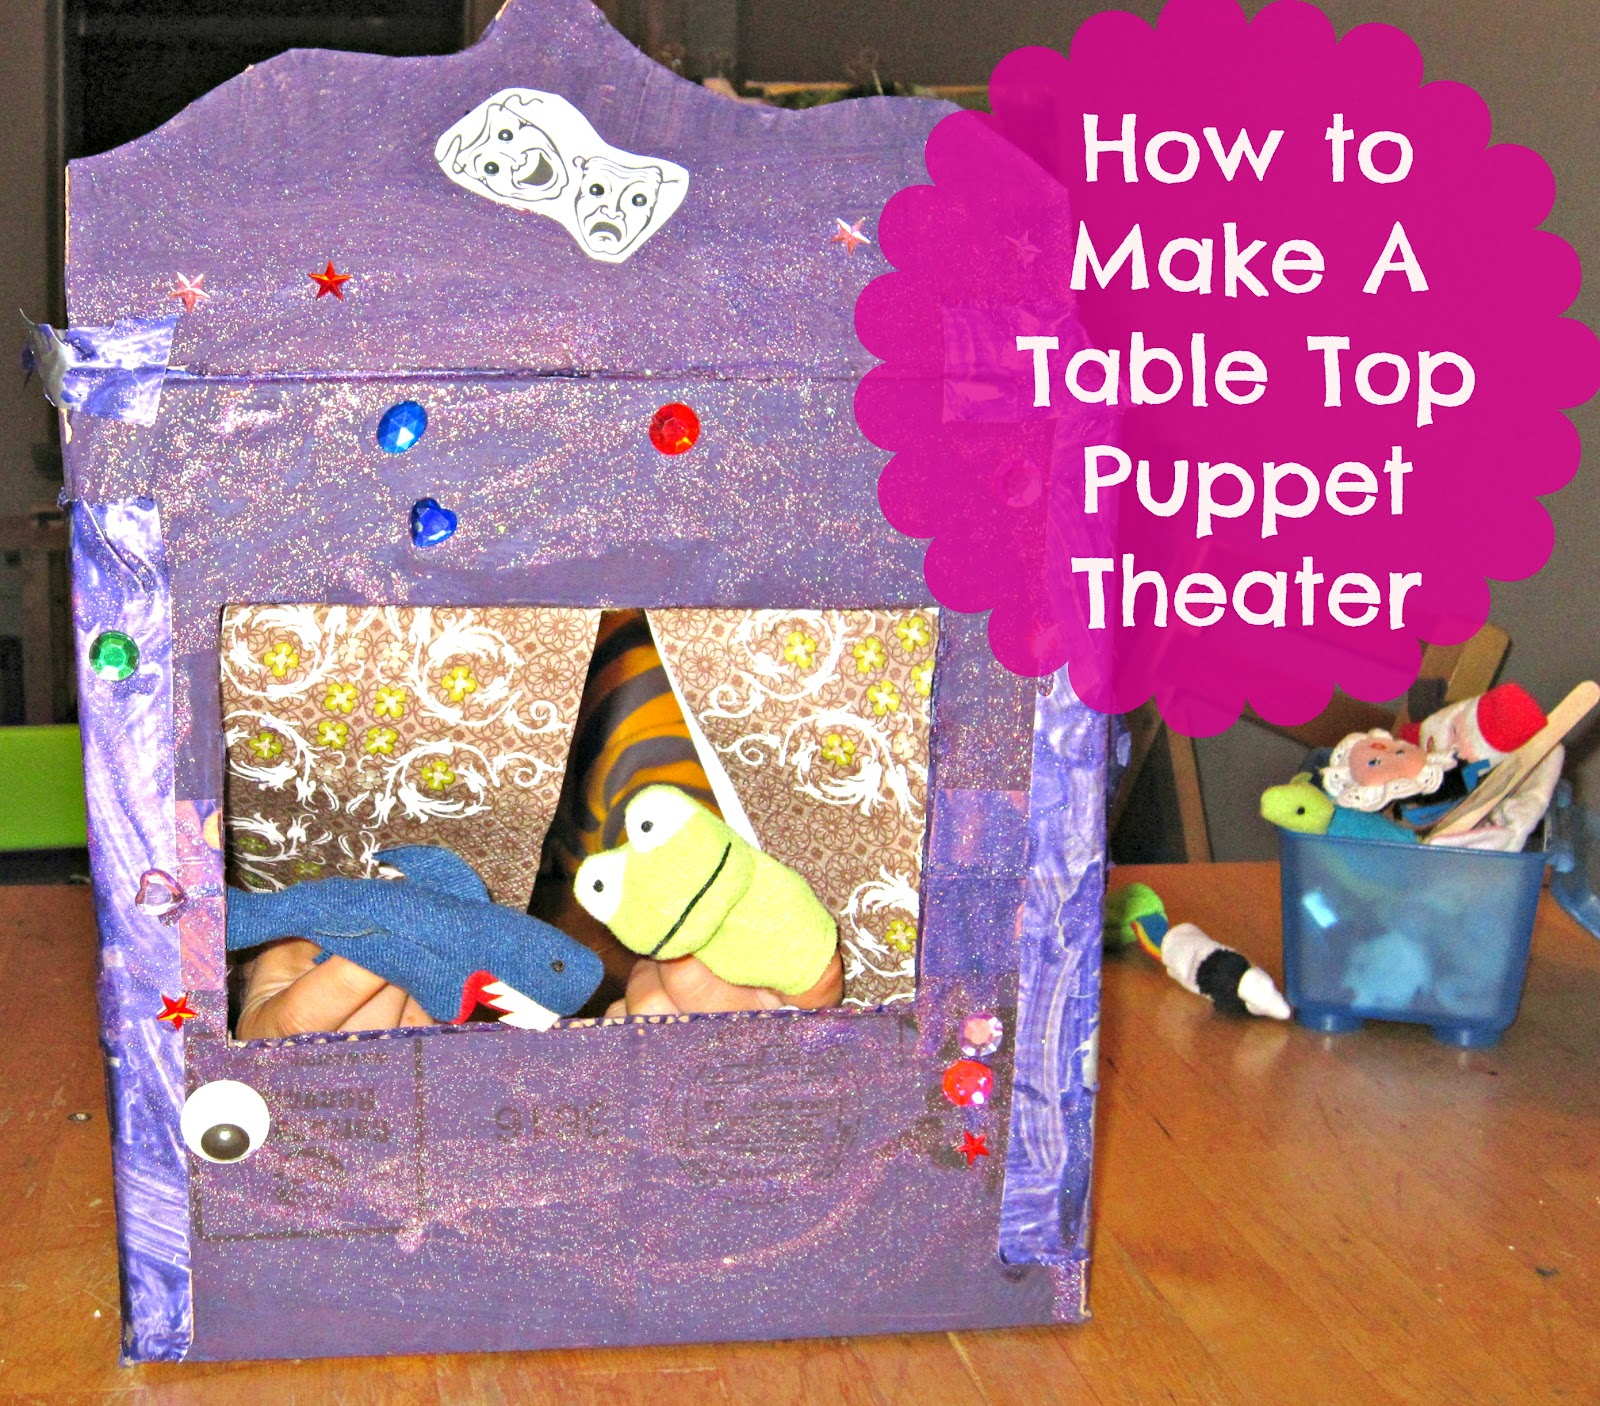 Easy DIY Table Top Puppet Theater for Tiny Apartments